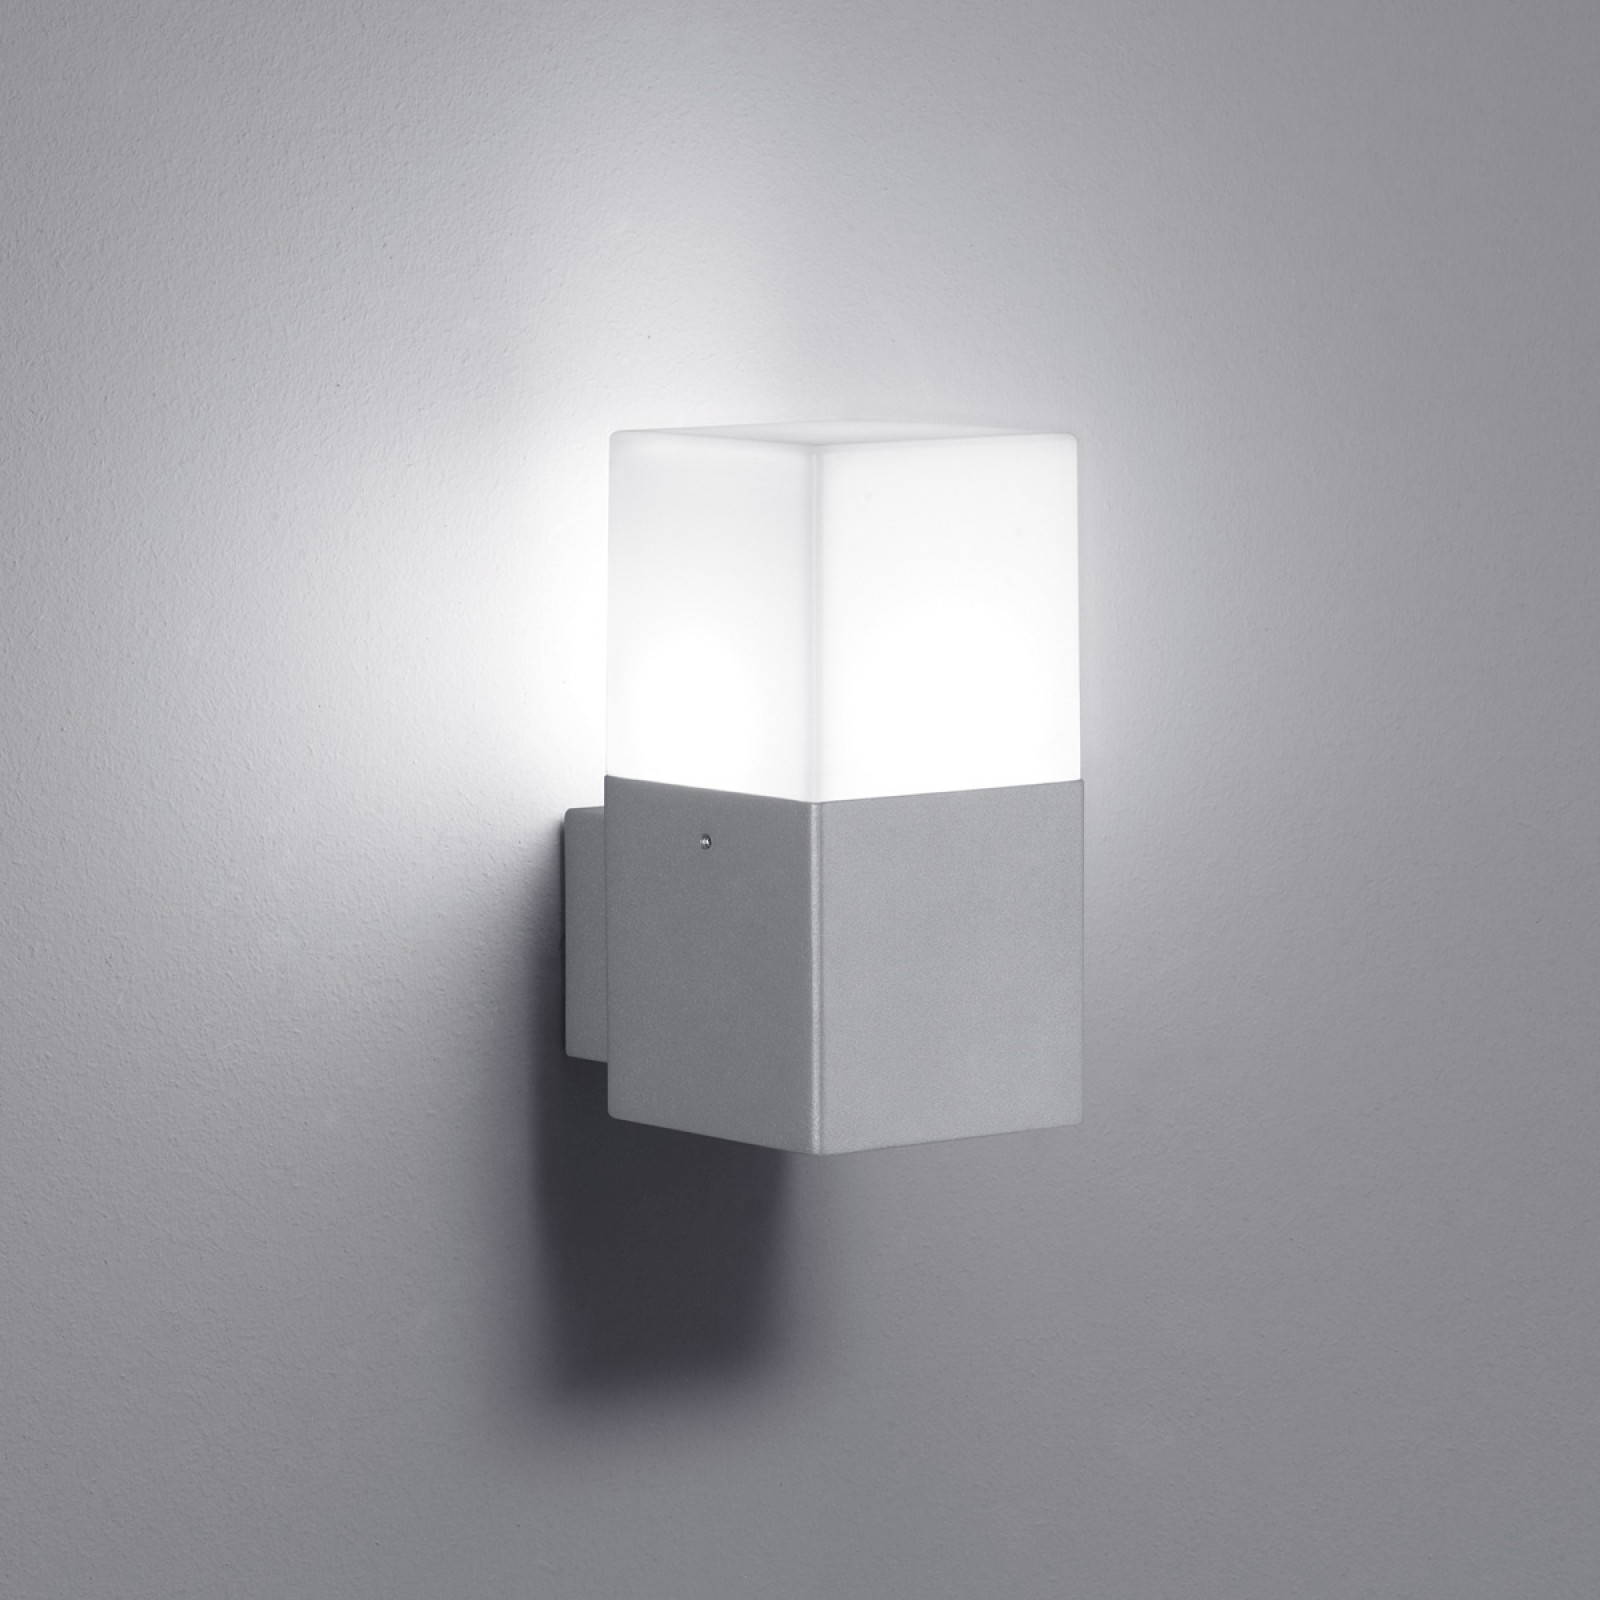 LED-seinävalaisin Hudson 85x115x170 mm titaani